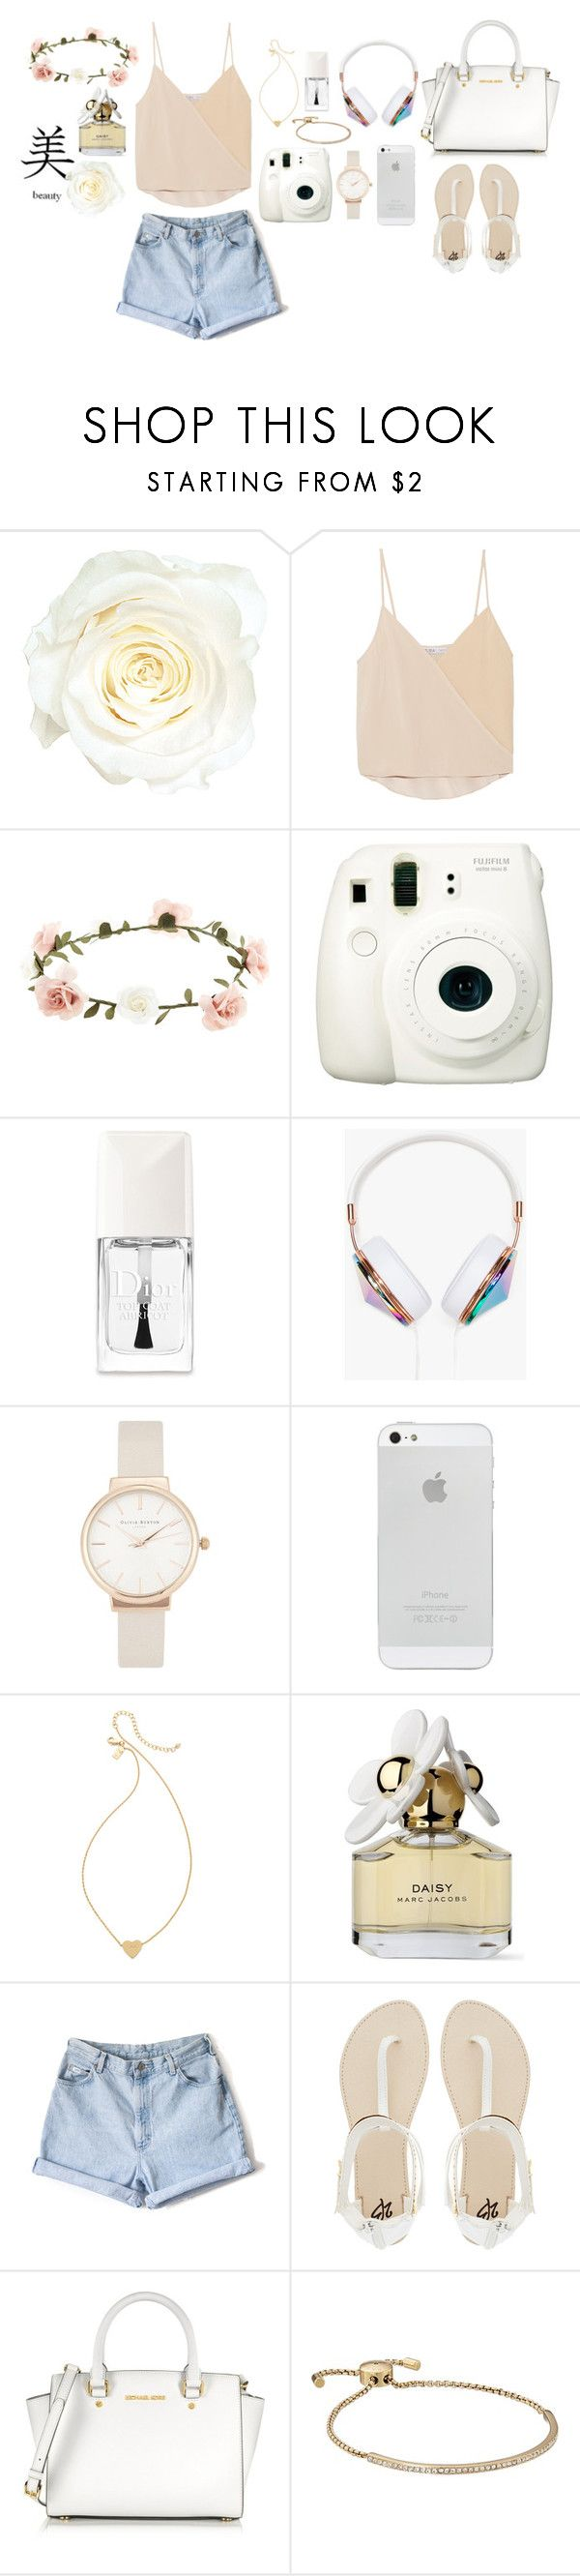 """""""Spring is here ❤️"""" by barbara-pinheiro ❤ liked on Polyvore featuring Chelsea Flower, Accessorize, Fuji, Christian Dior, Frends, Olivia Burton, Kate Spade, Marc Jacobs, 2b bebe and Michael Kors"""